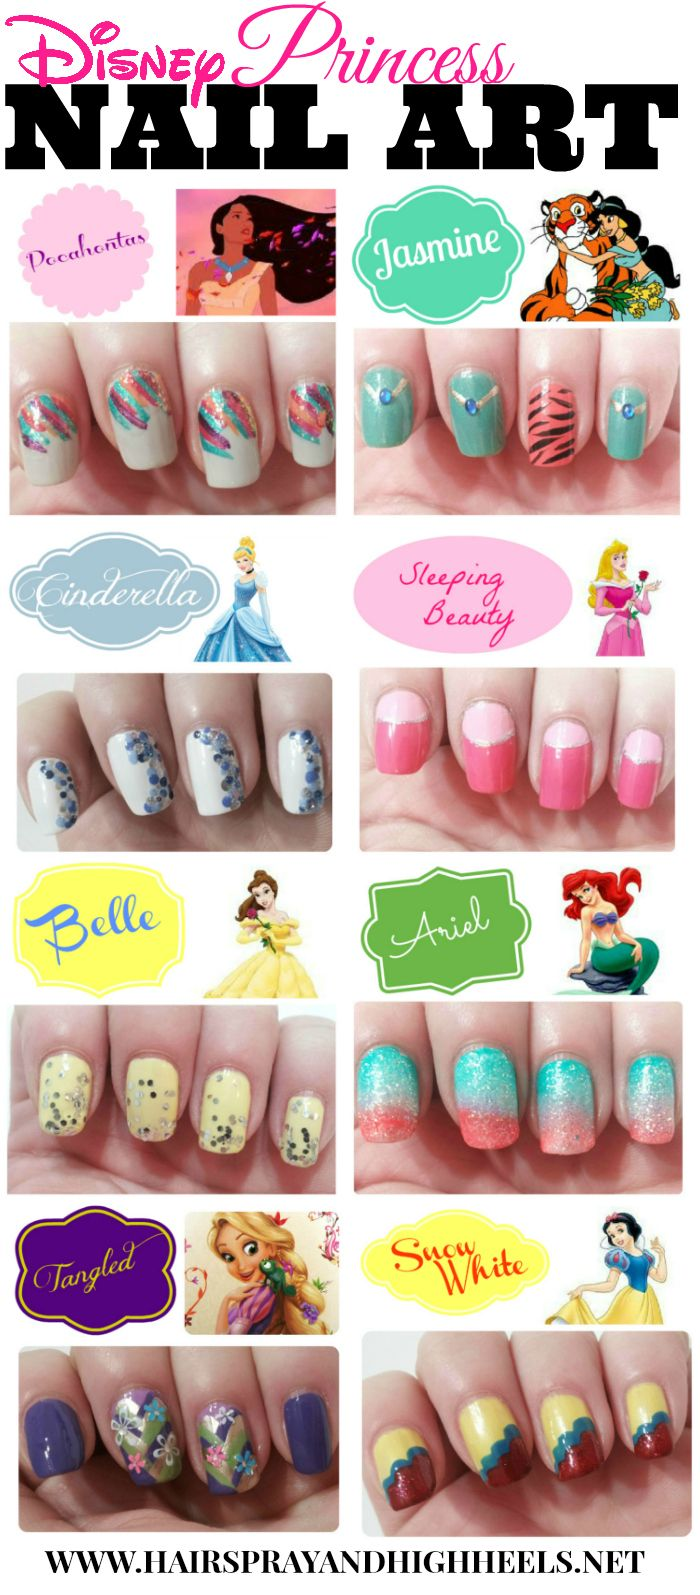 Disney-Princess-Nail-Art